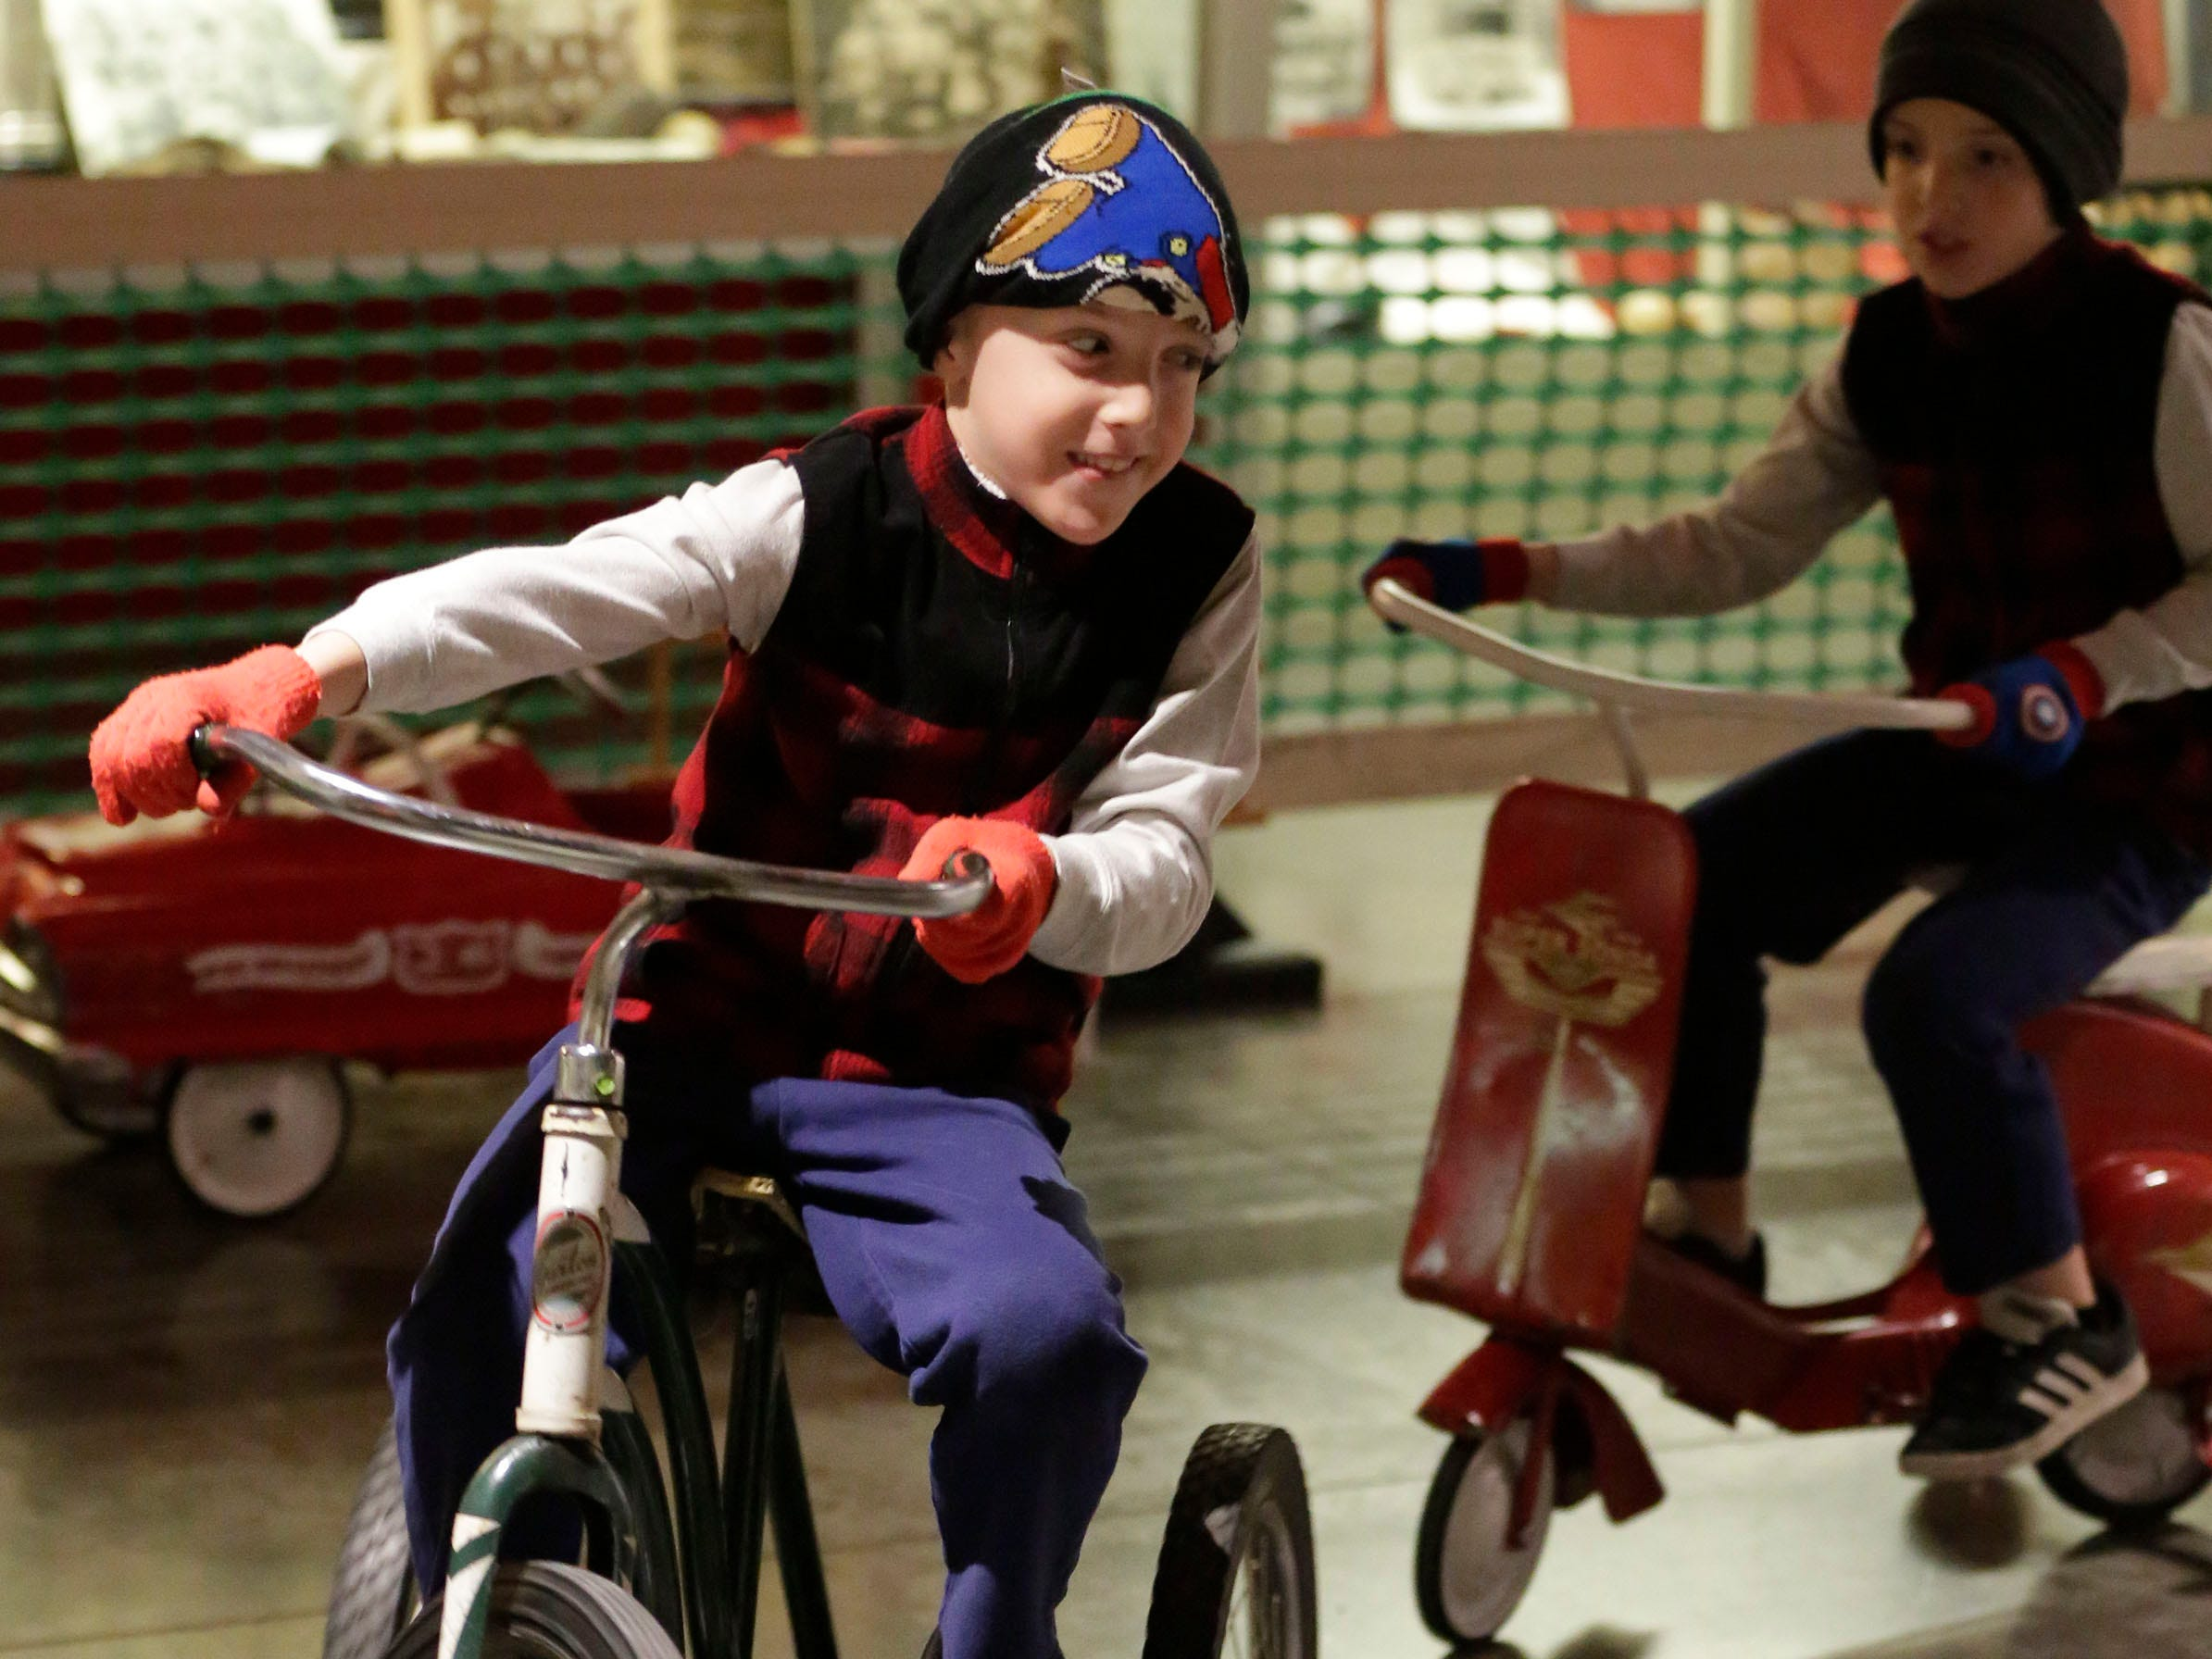 Bryce Van Auken, 7, of Sheboygan Falls, Wis., pedals a vintage Garton toy ahead of his twin brother Nolan, 7, during the Sheboygan County Historical Museum's Holiday Memories, Friday, November 23, 2018, in Sheboygan, Wis.